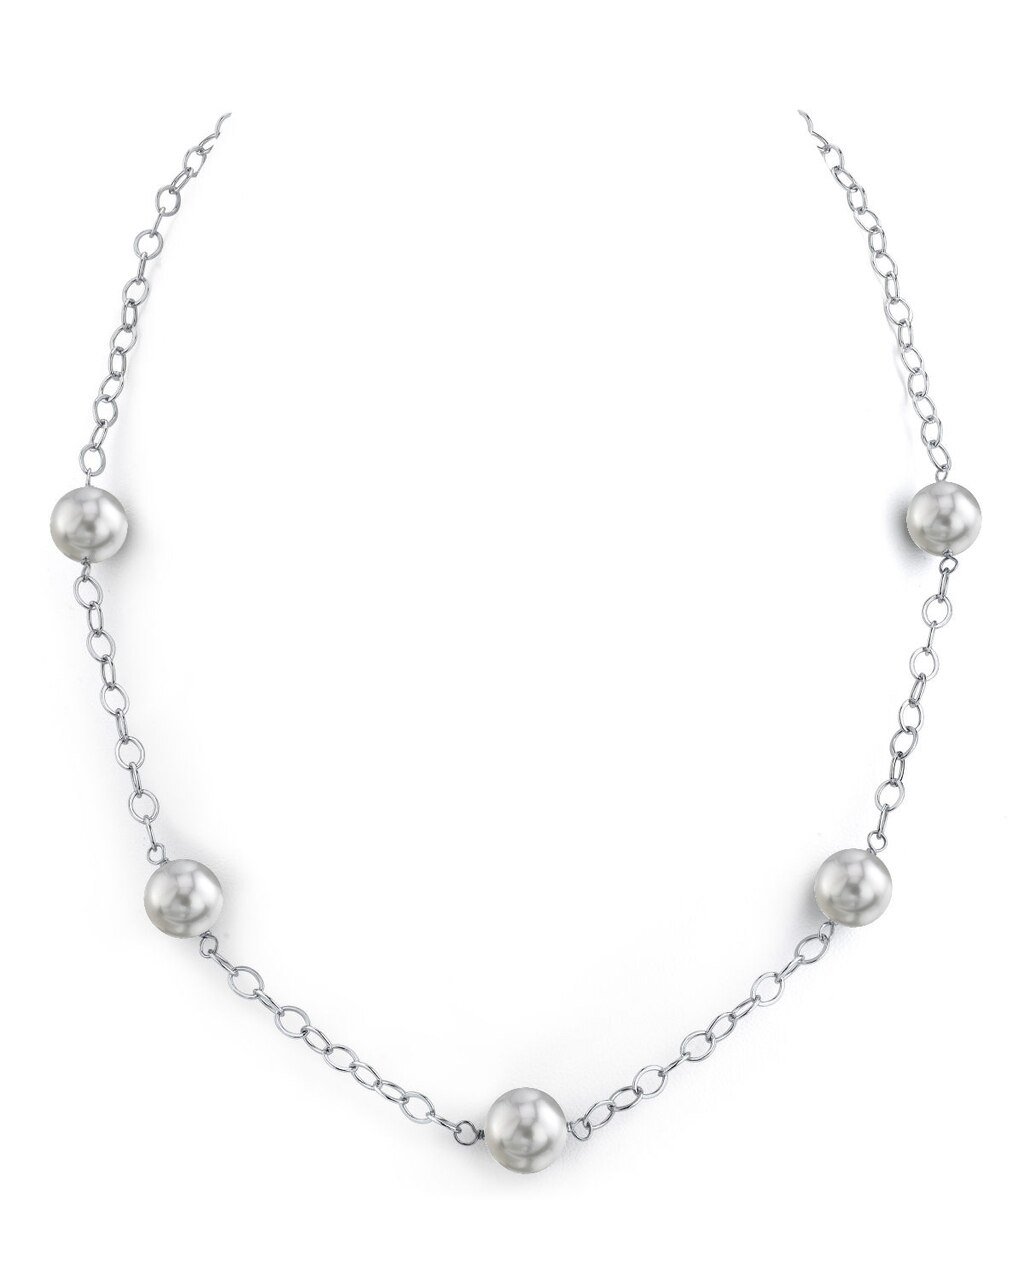 This exquisite necklace features 9.0-10.0mm White South Sea pearls, handpicked for their radiant luster